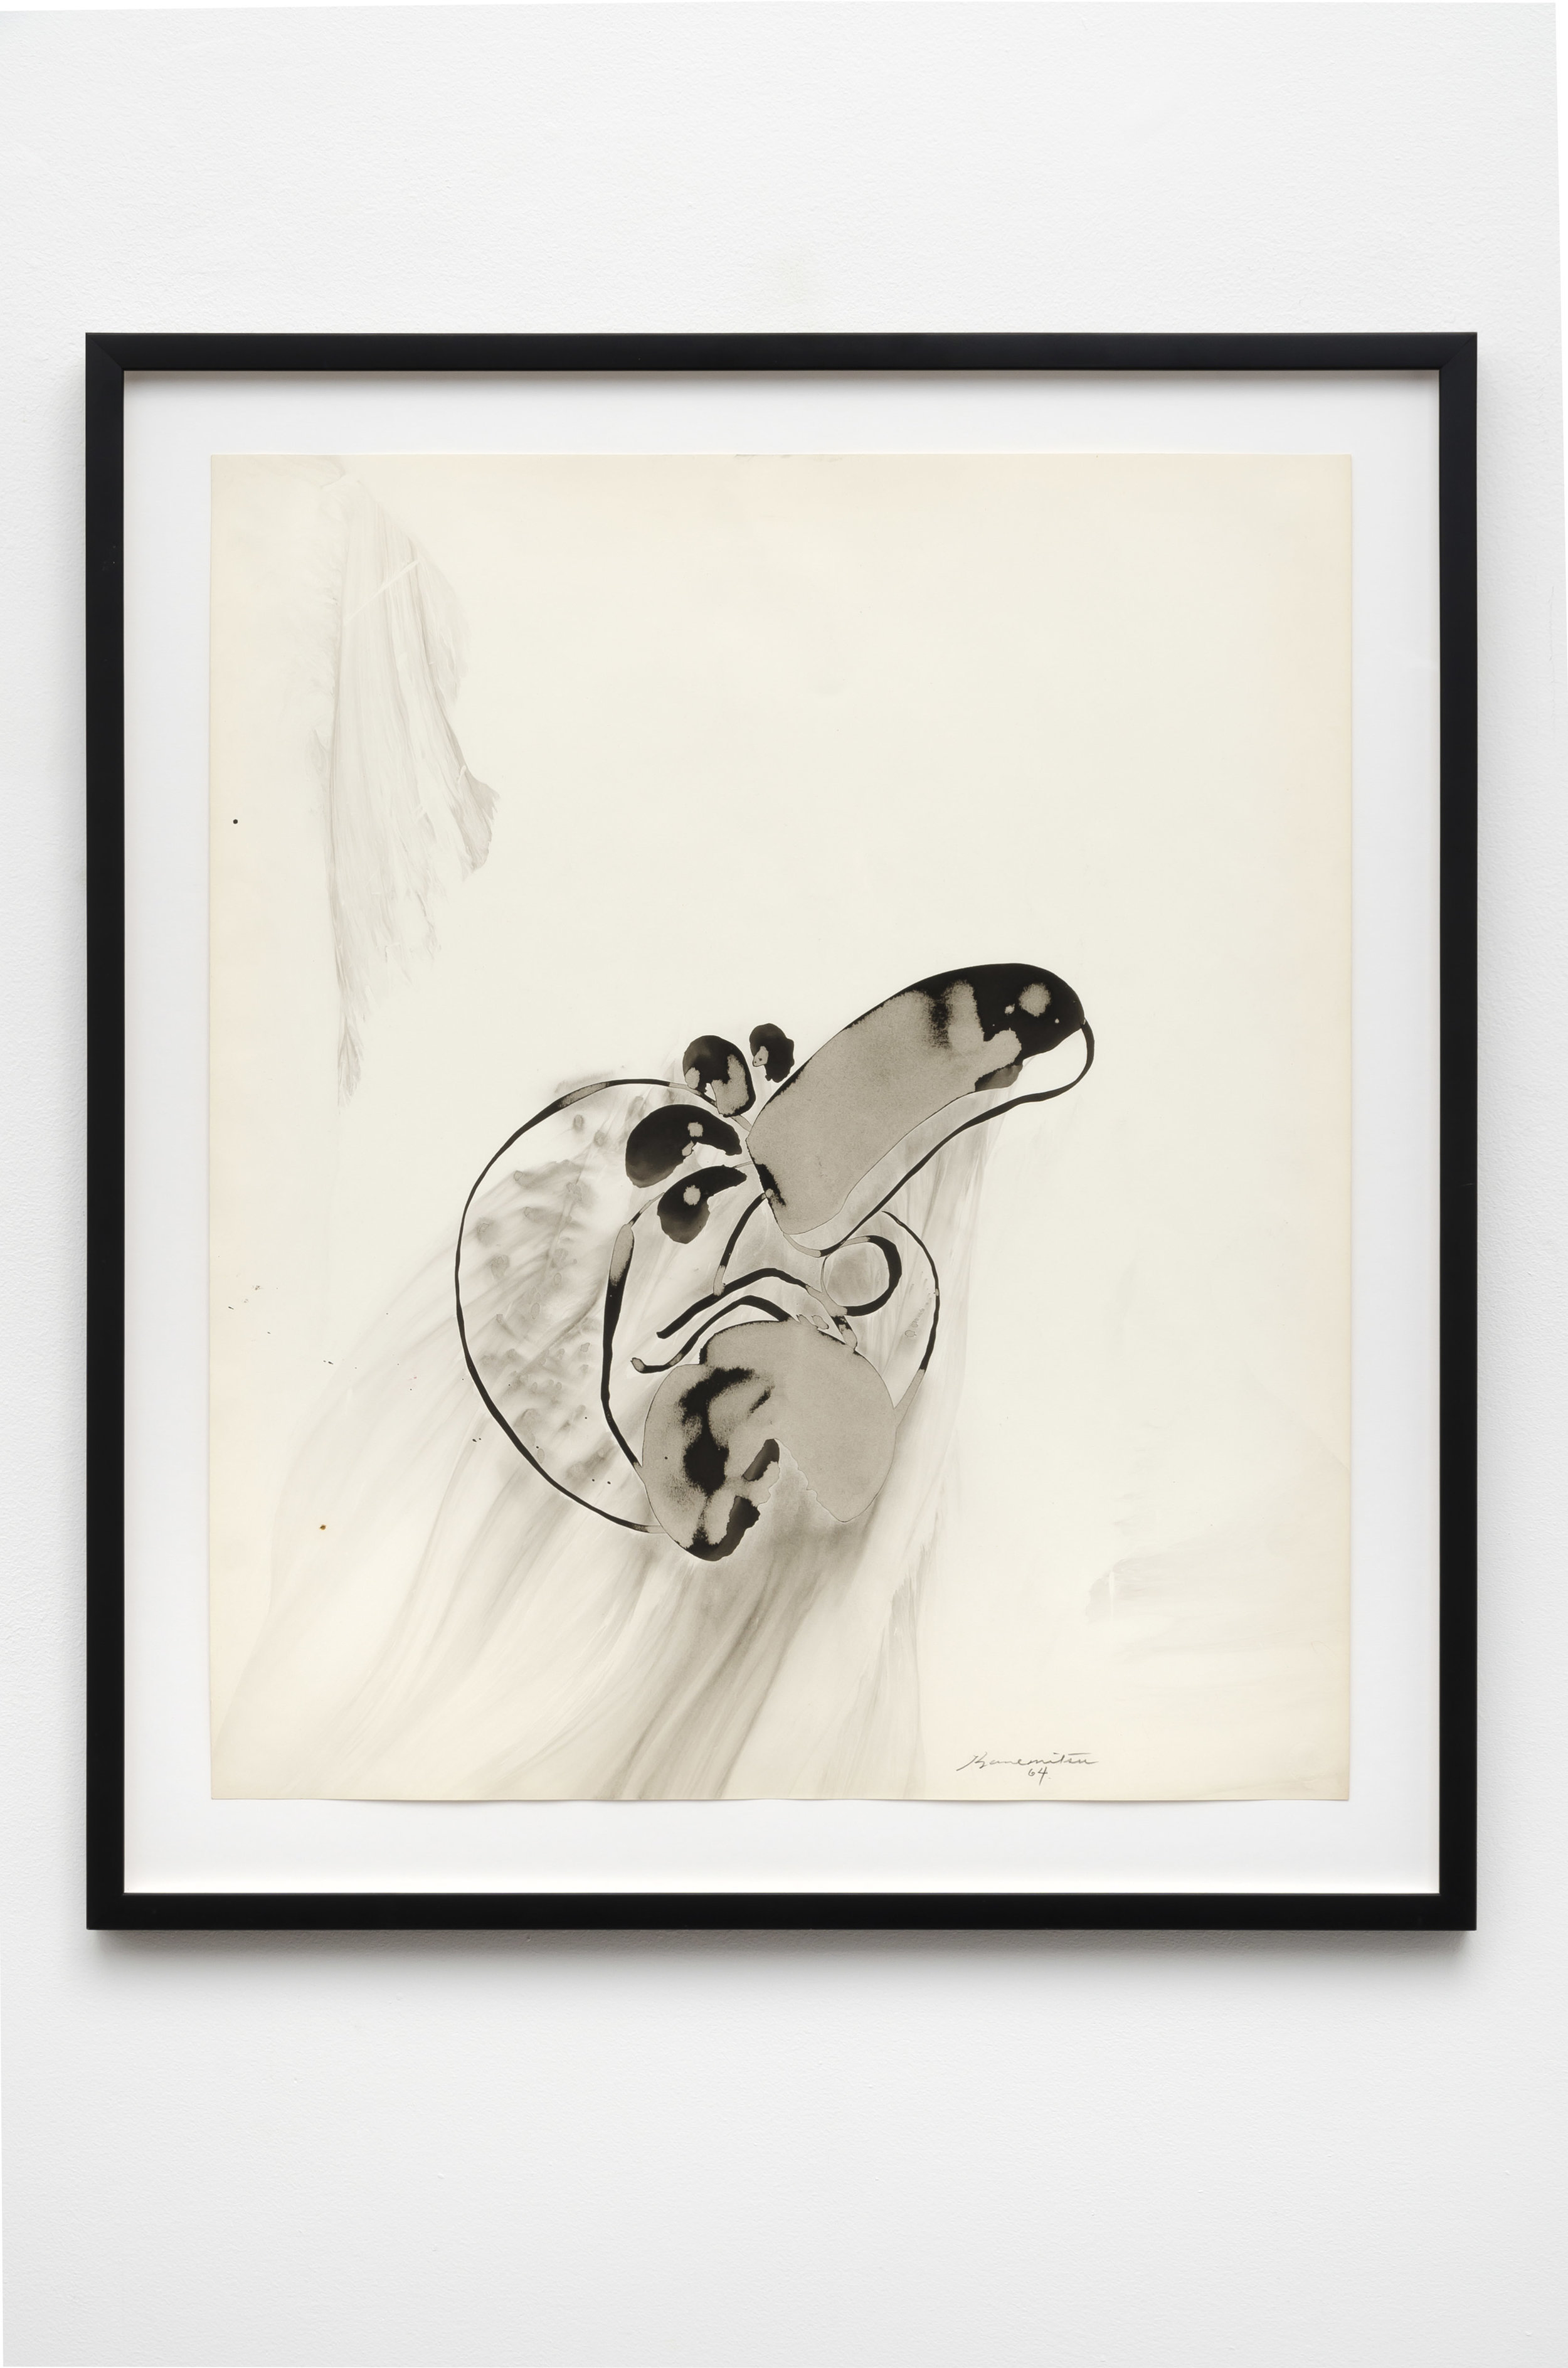 Untitled , 1964 sumi ink on paper 32.5 x 28 inches; 82.5 x 71.1 centimeters